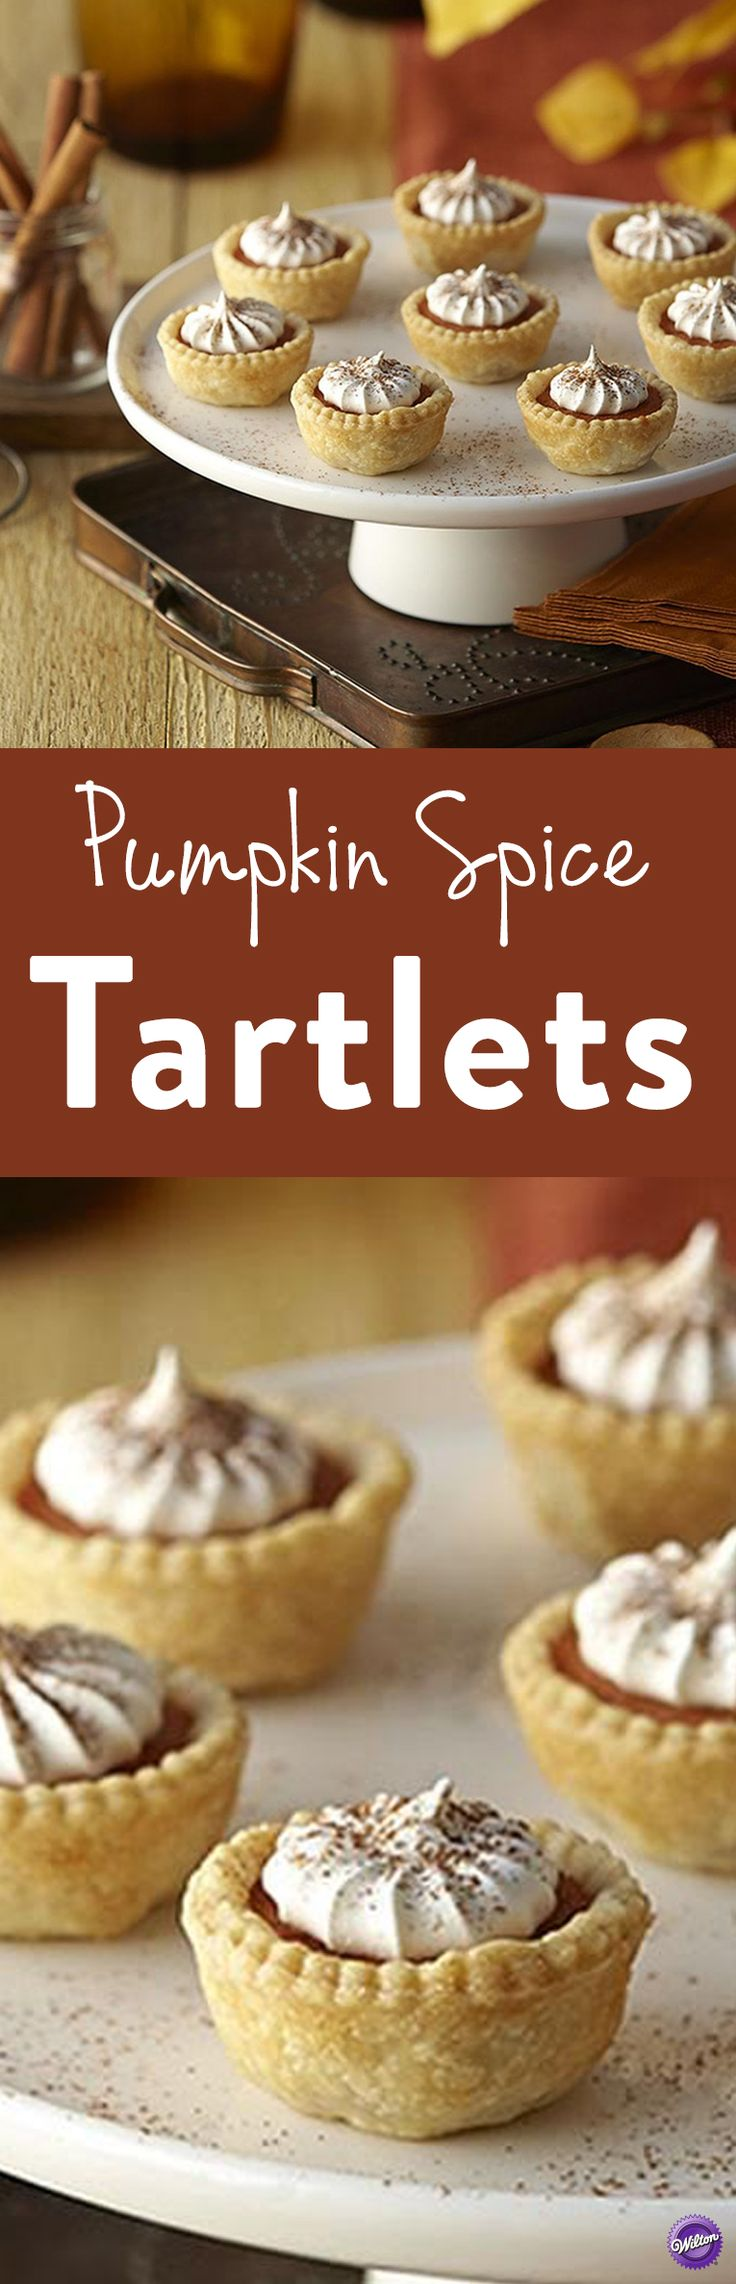 Pumpkin Spice Tartlets Recipe - Whip up an easy, bite-size dessert perfect for game day parties, book clubs or girls' get-togethers. Yummy pumpkin spice blended with rich cream makes an irresistible filling in a flaky tartlet crust. No one will be able to eat just one!